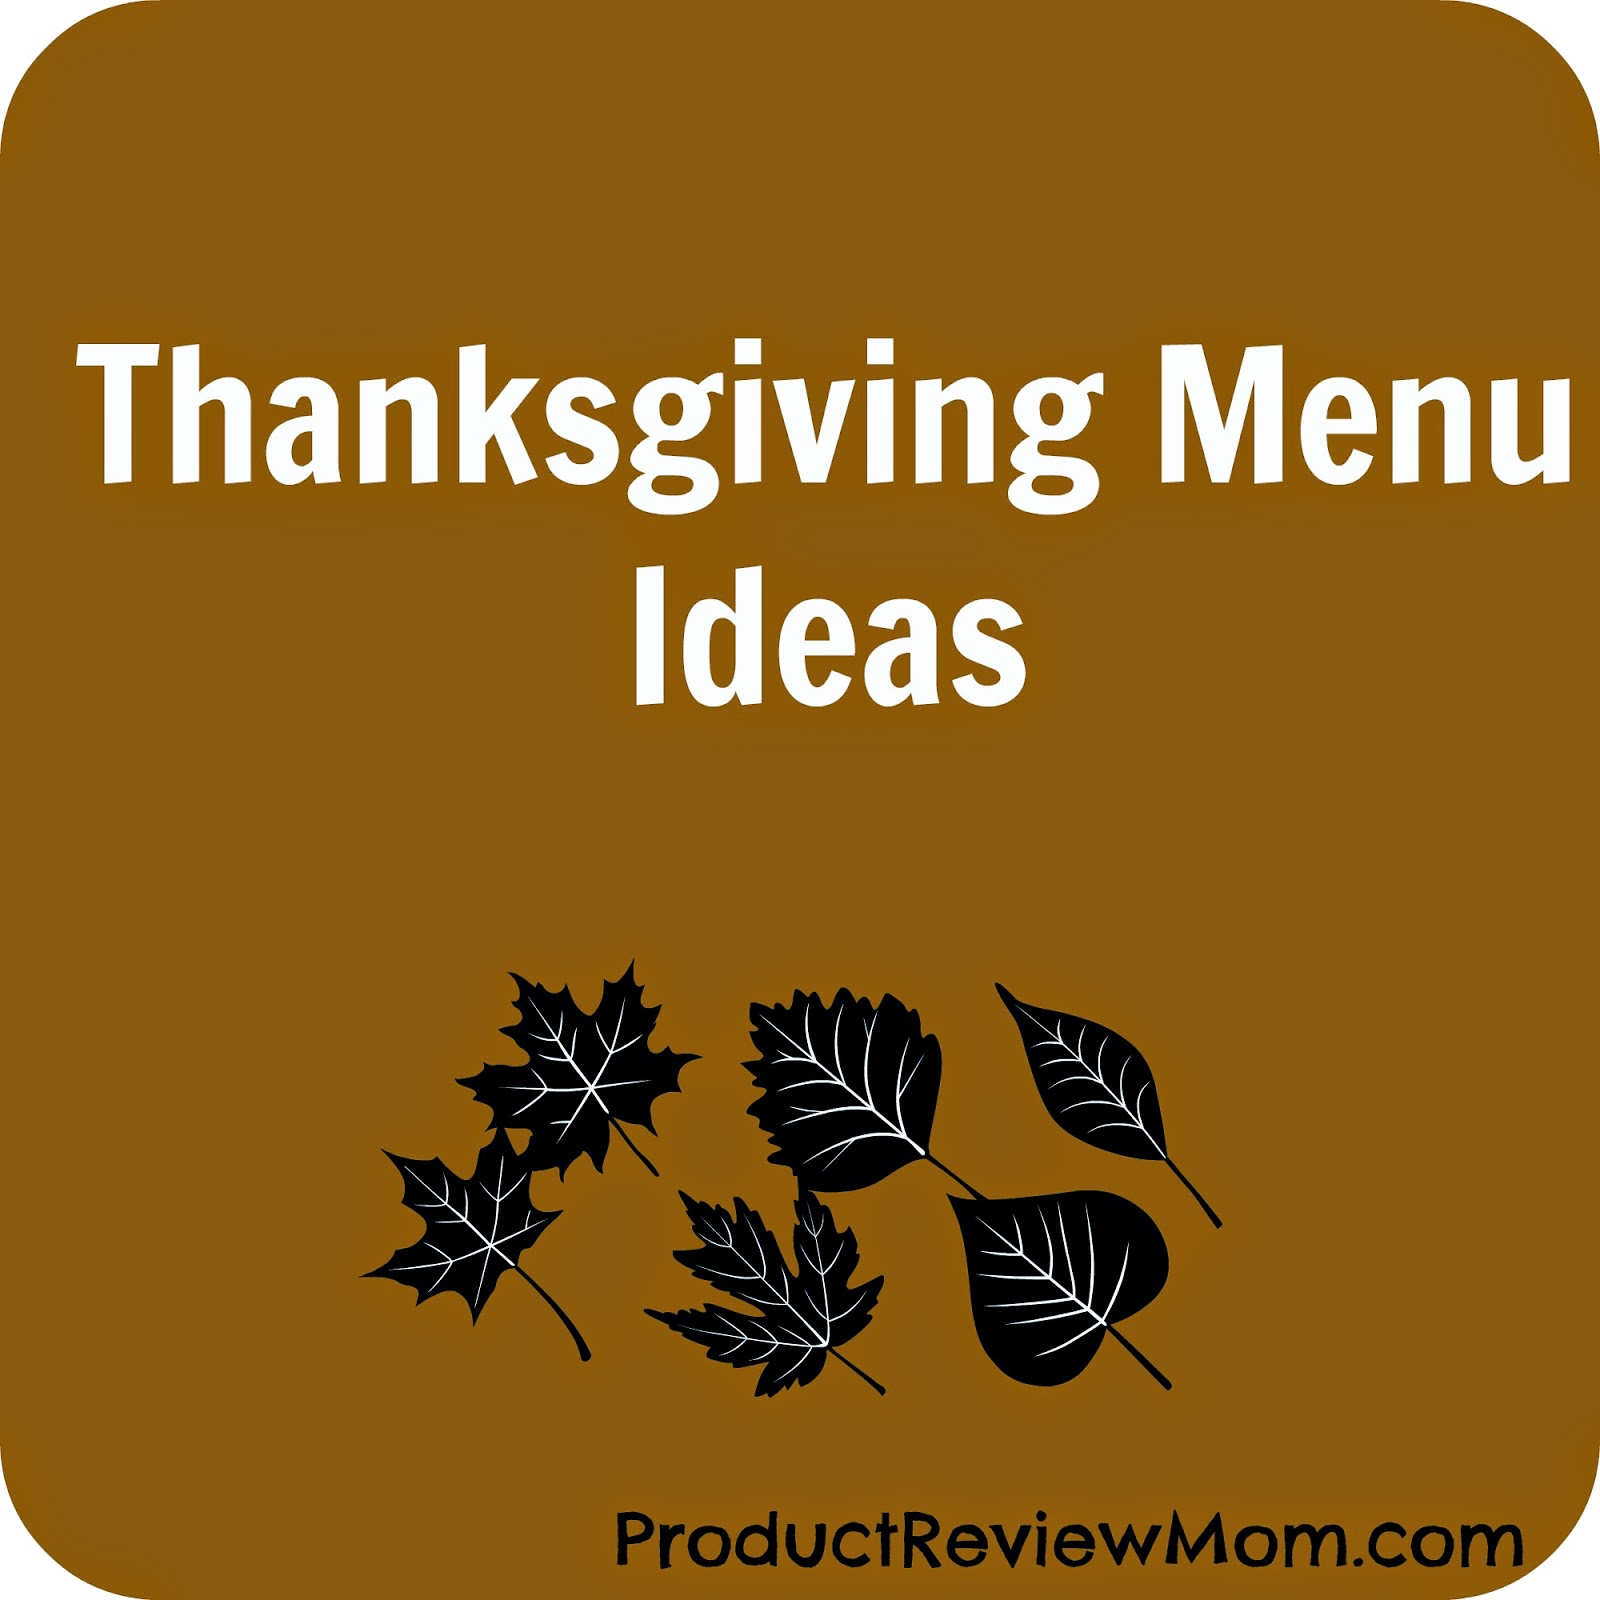 #Thanksgiving Menu Ideas via www.productreviewmom.com